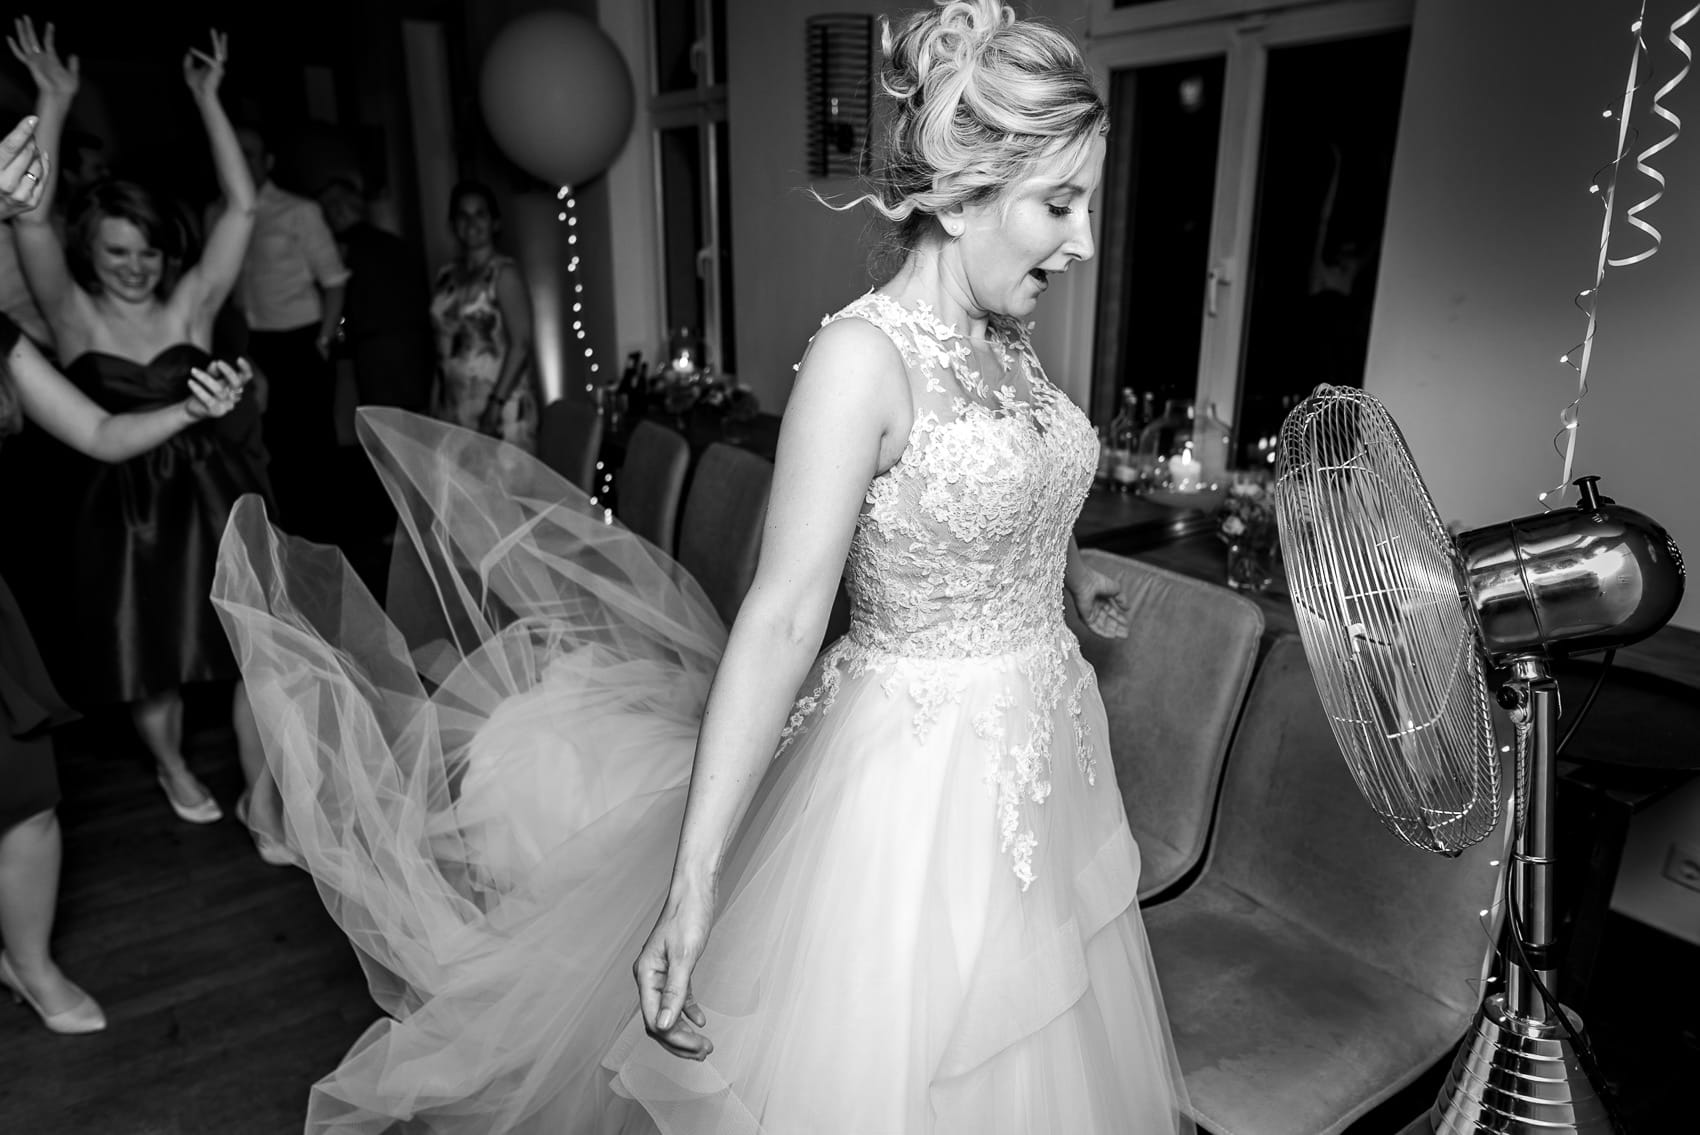 Photo of bride cooling herself off with a fan during her wedding dancing party